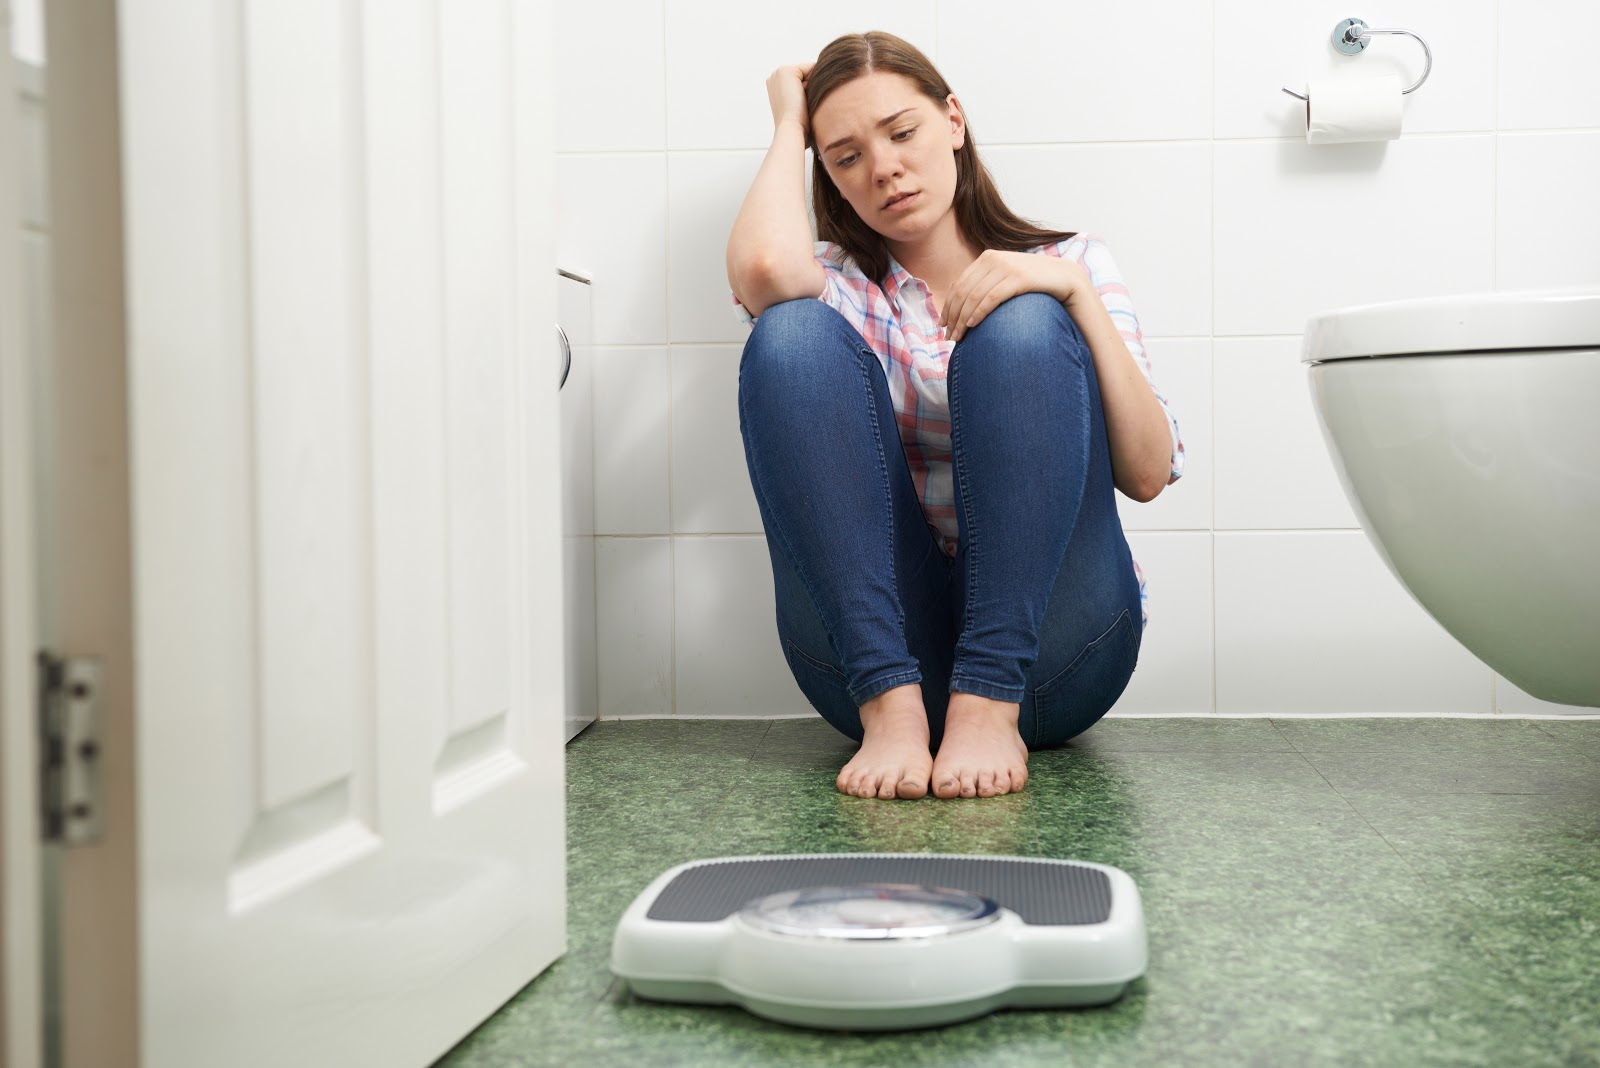 sad woman sitting on bathroom floor behind scale